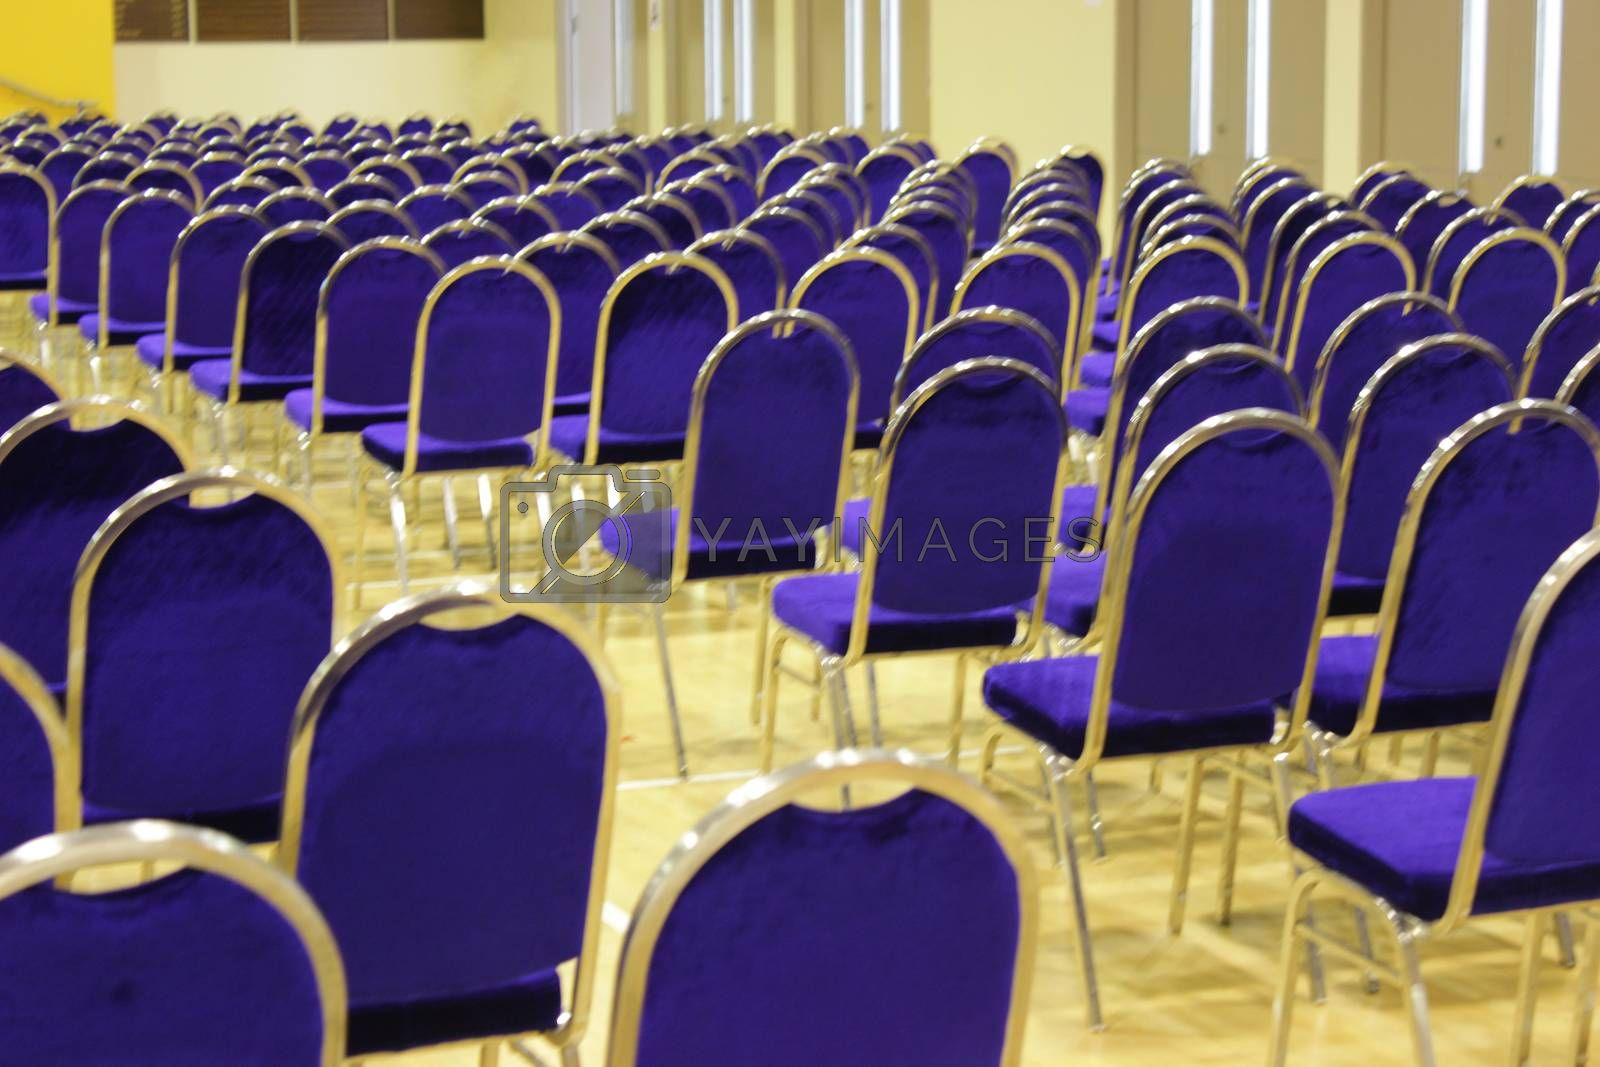 Empty rows of seats in auditorium hall.Concept of quarantine,curfew,cancellation of mass events to prevent spreading of  coronavirus .